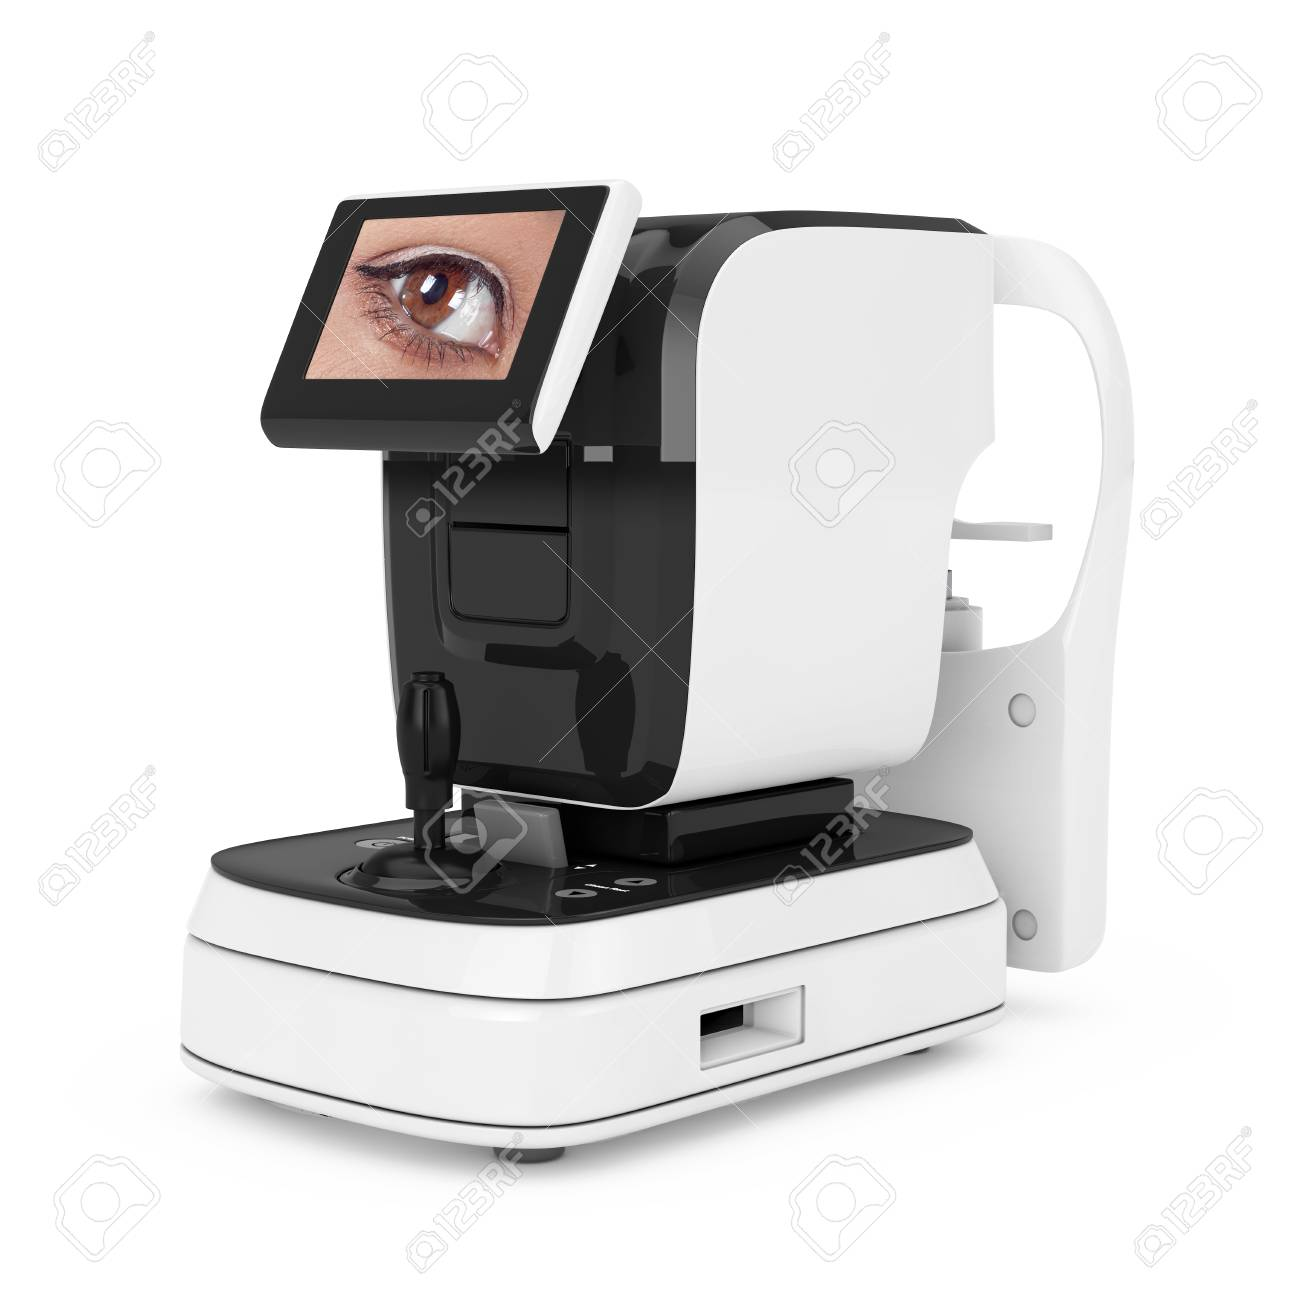 Optical Auto Refractometer Eye Test Machine on a white background